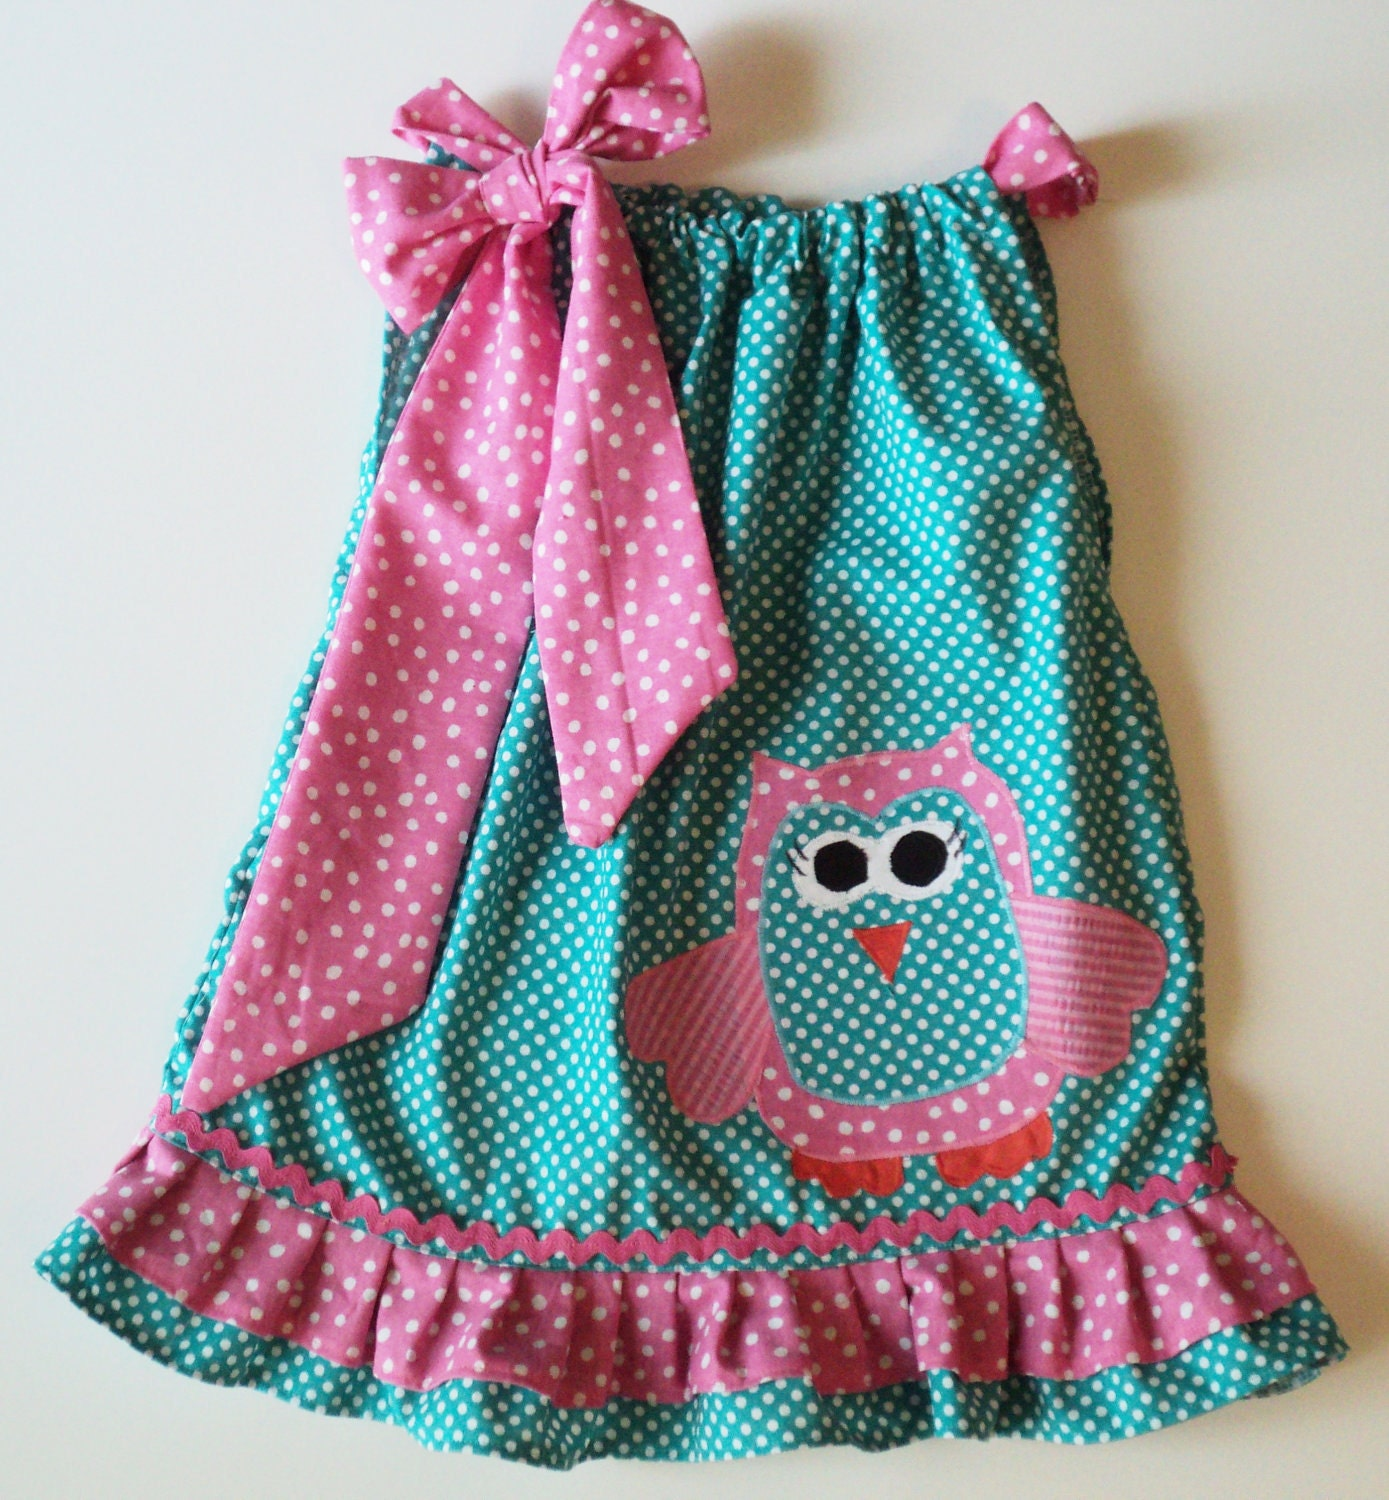 Cute Ideas For Pillowcase Dresses : Custom Boutique OWL Pillowcase dress Sizes by Janslittlehearts